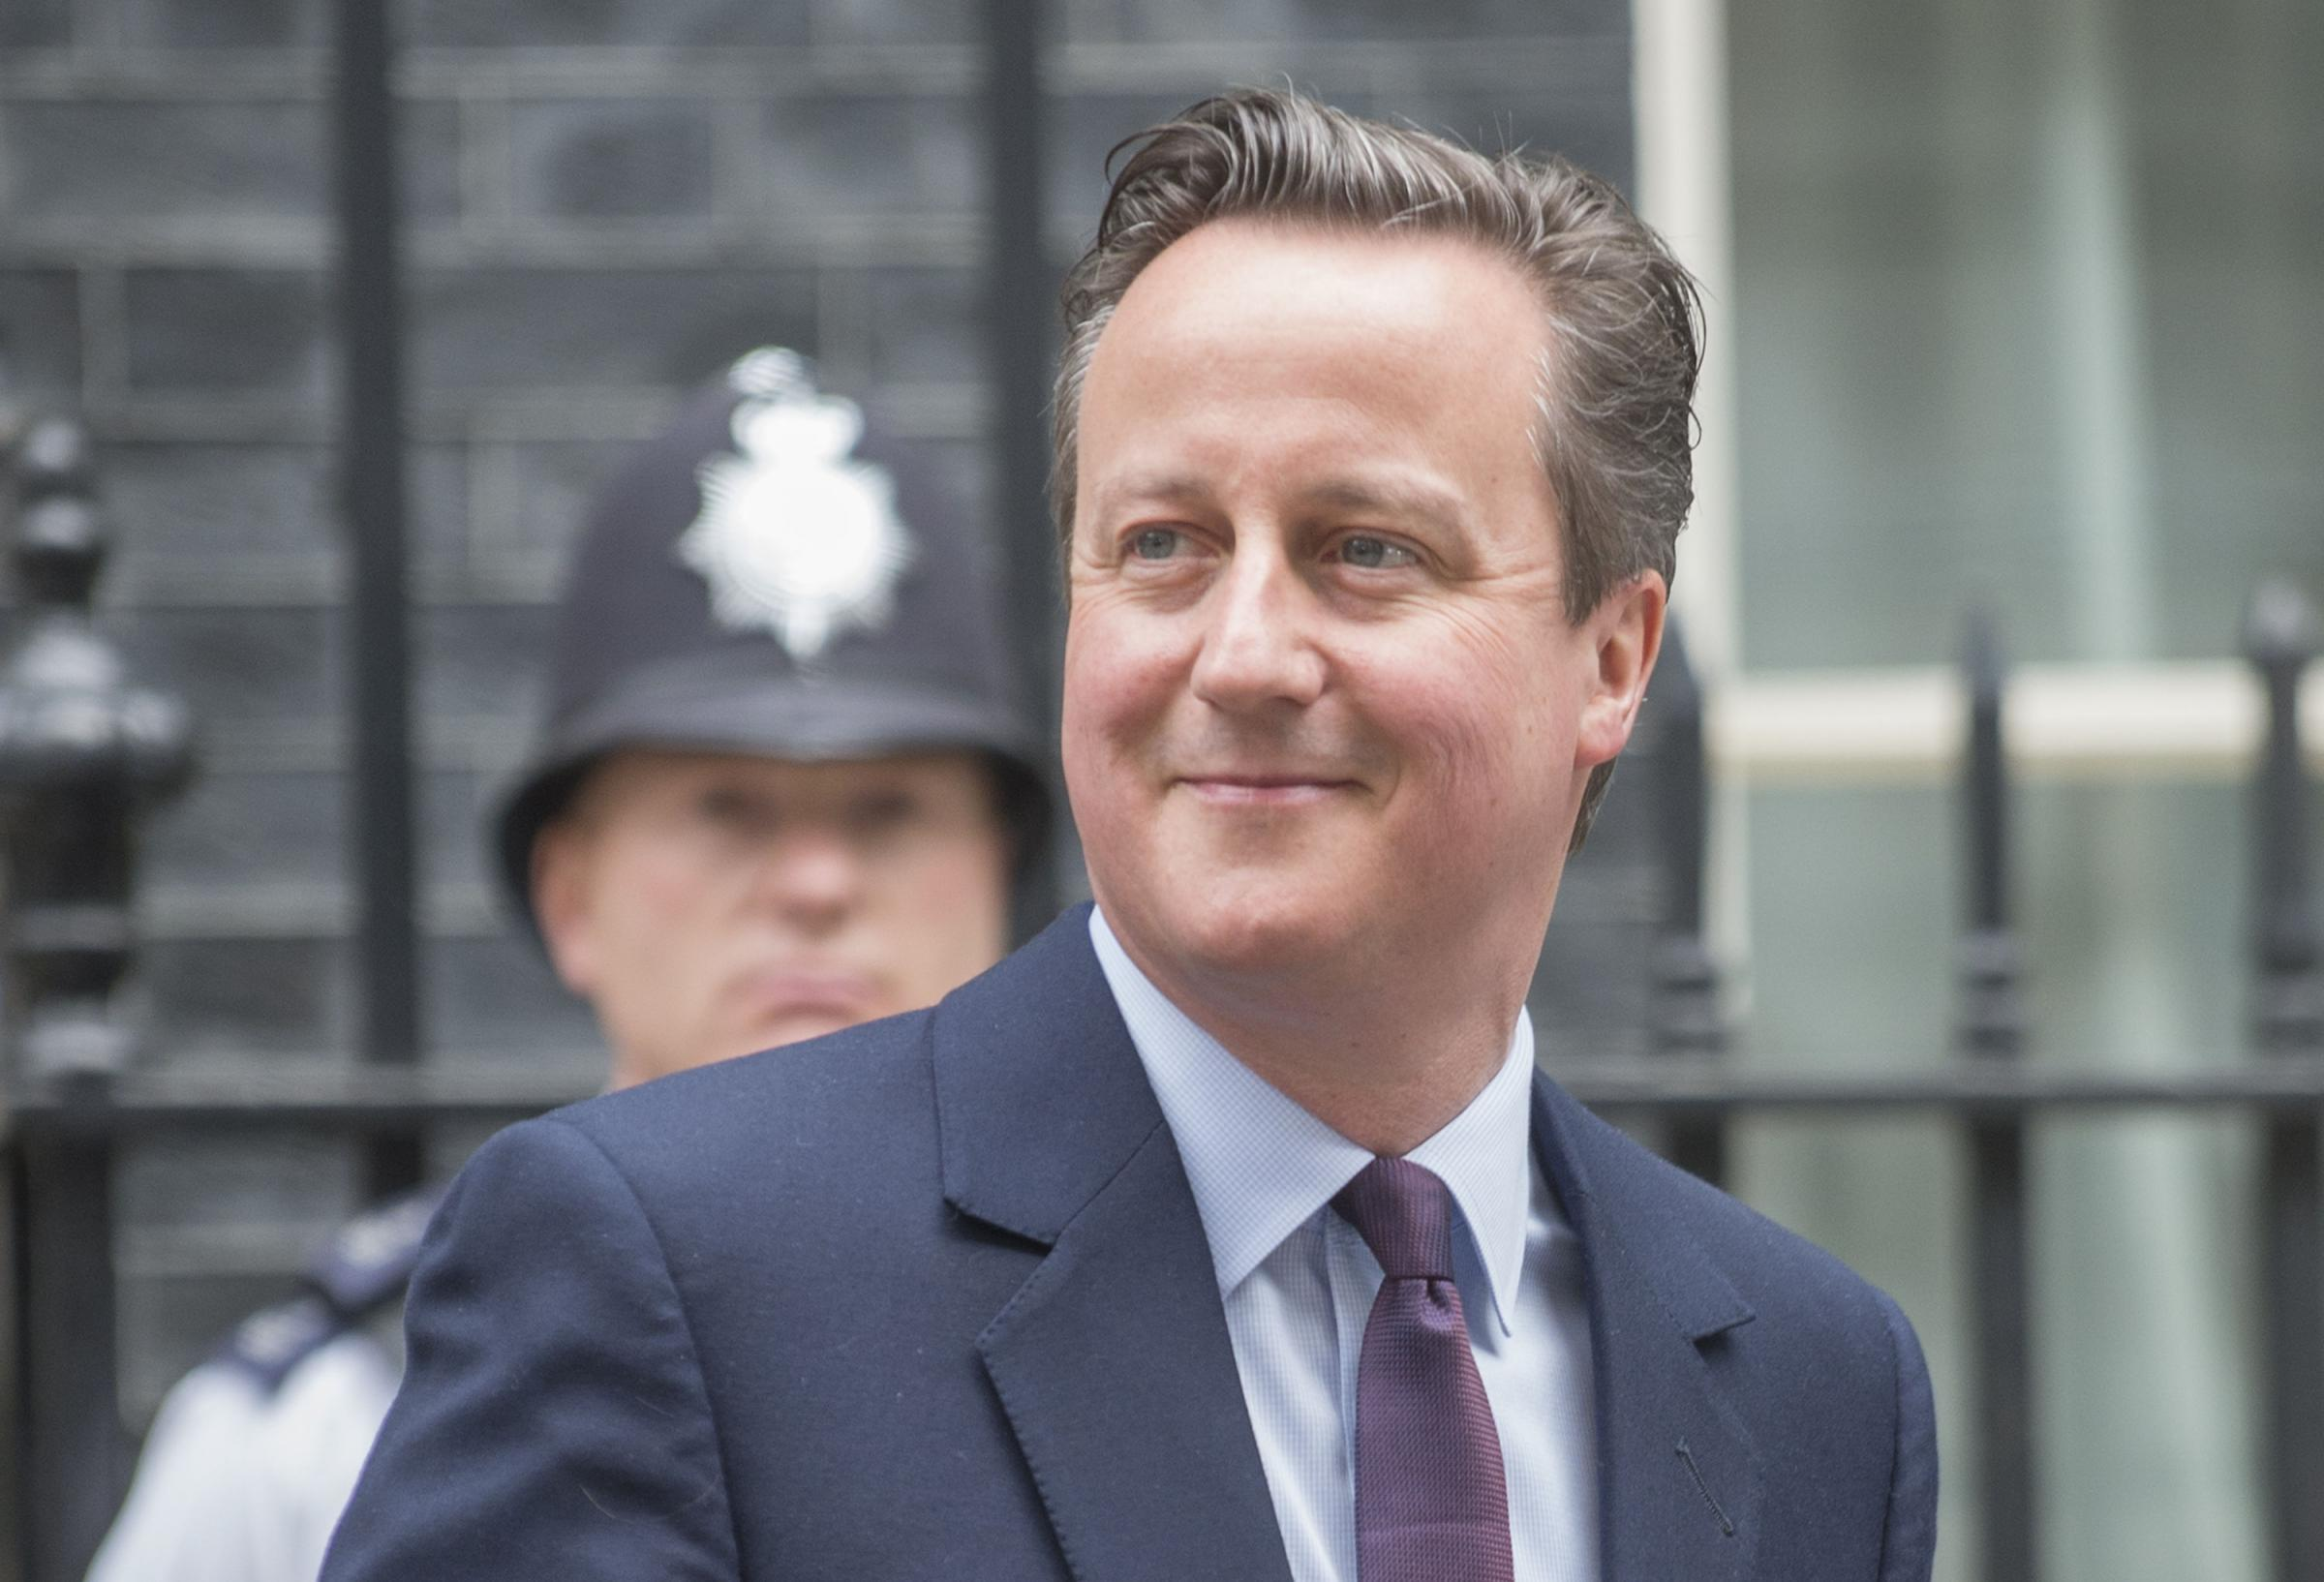 David Cameron is jubilant as he returns to No 10 as prime minister and head of a majority Conservative government